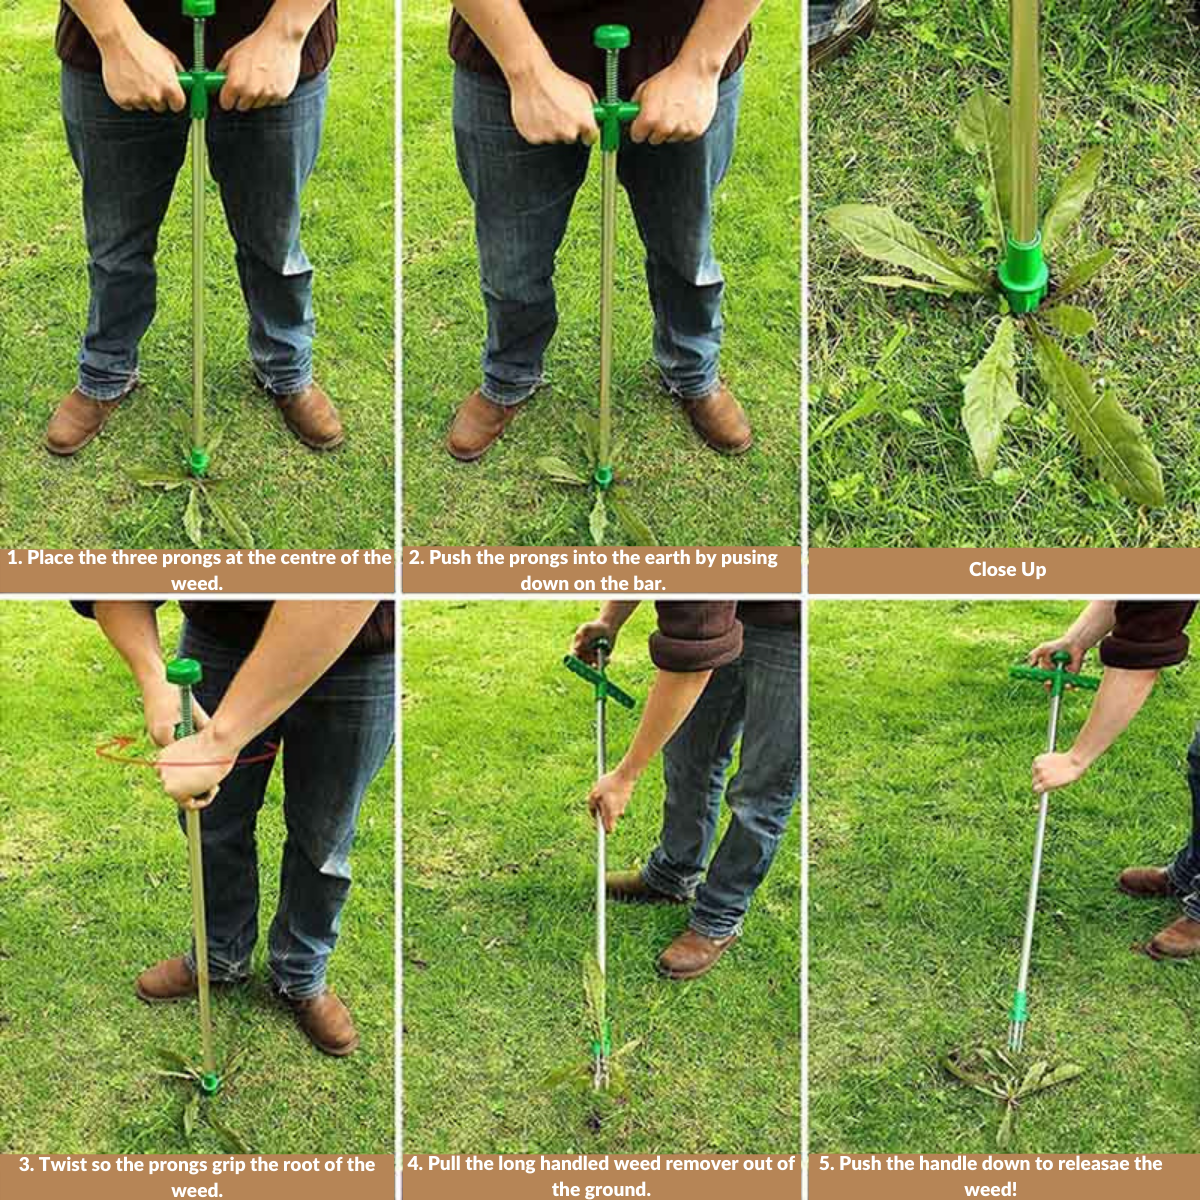 Long handled weed remover instructions